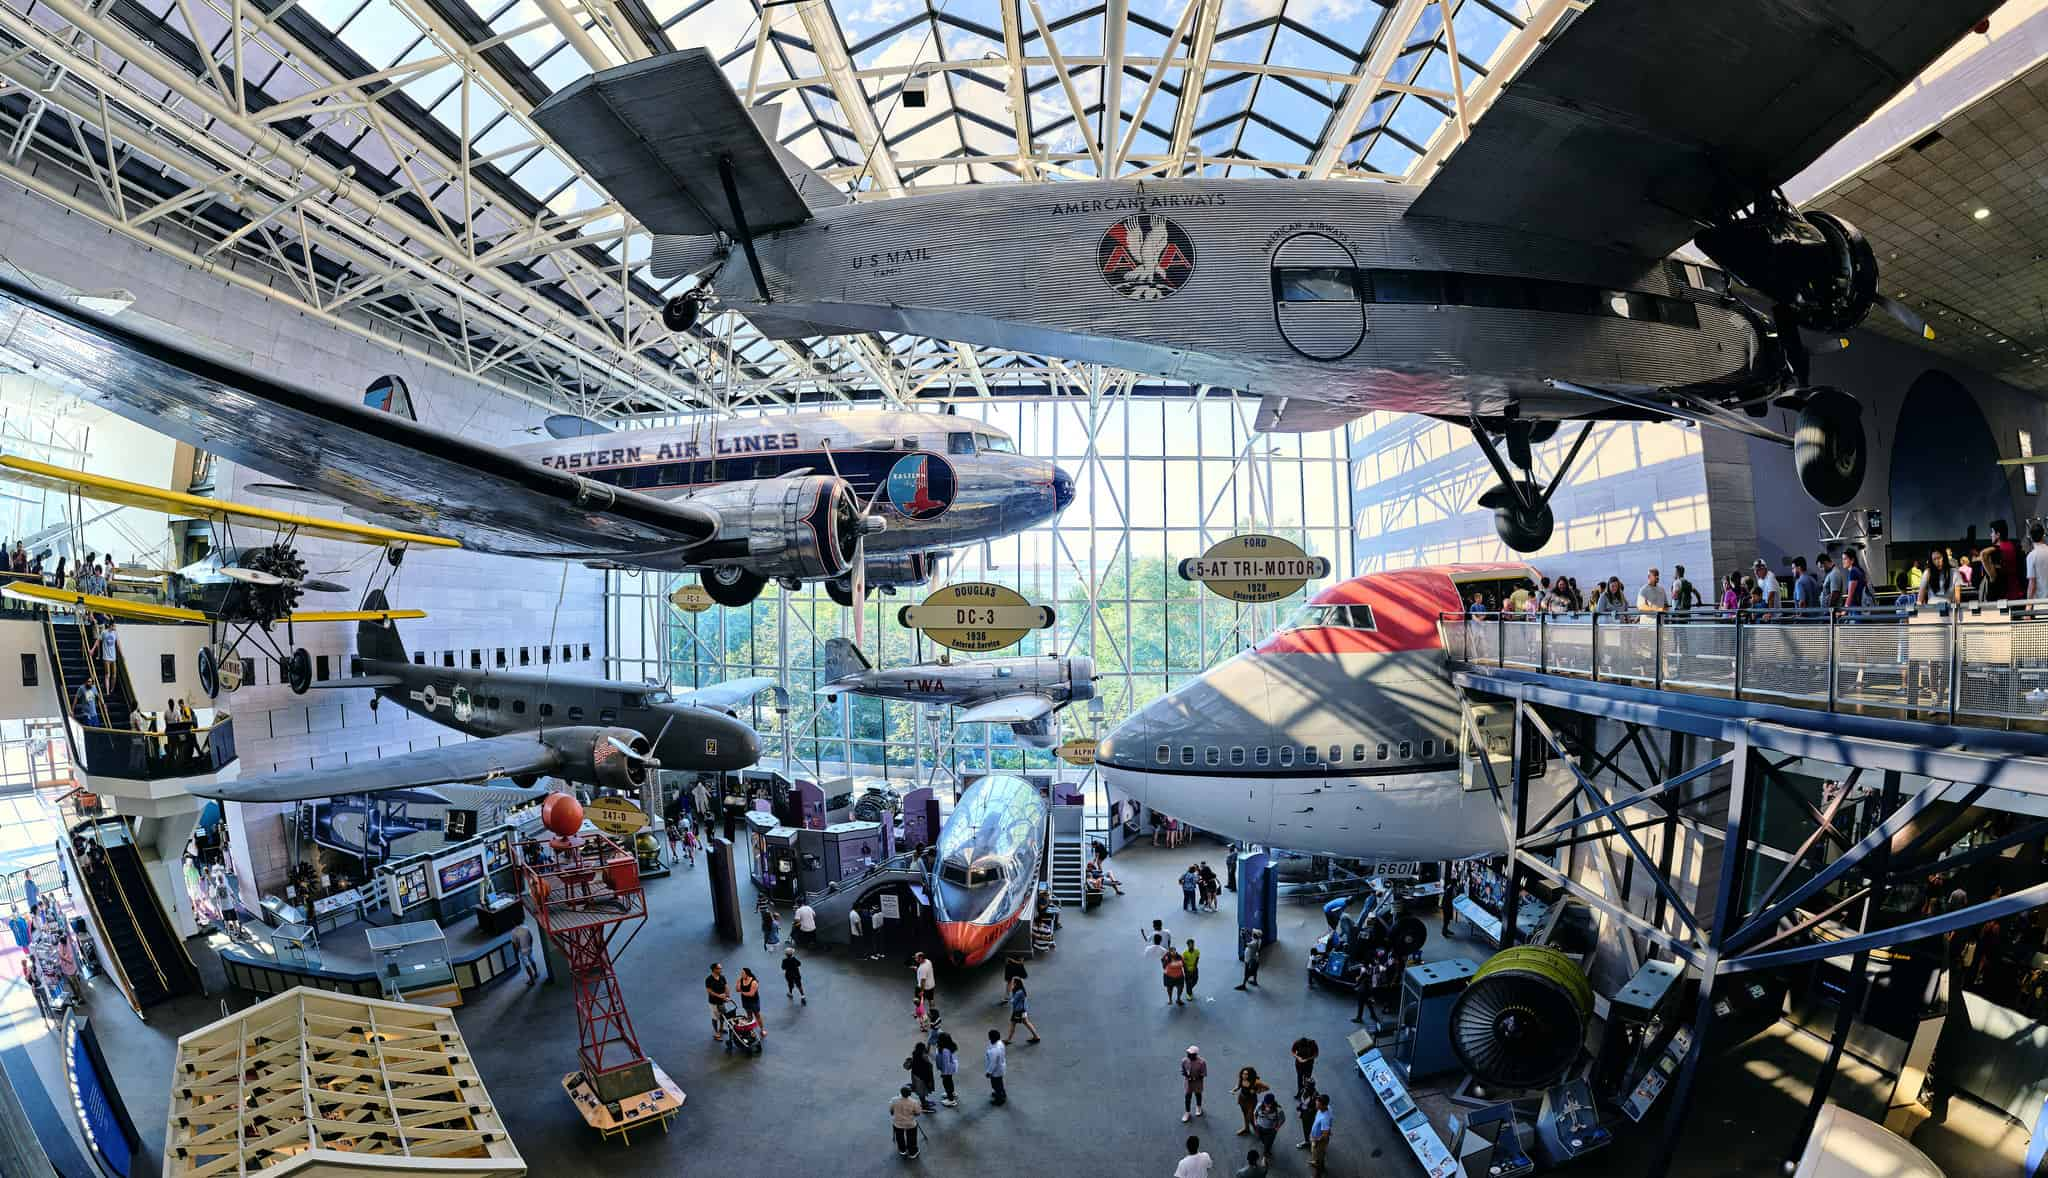 National Air and Space Museum - Best Family Vacations Spots in the USA